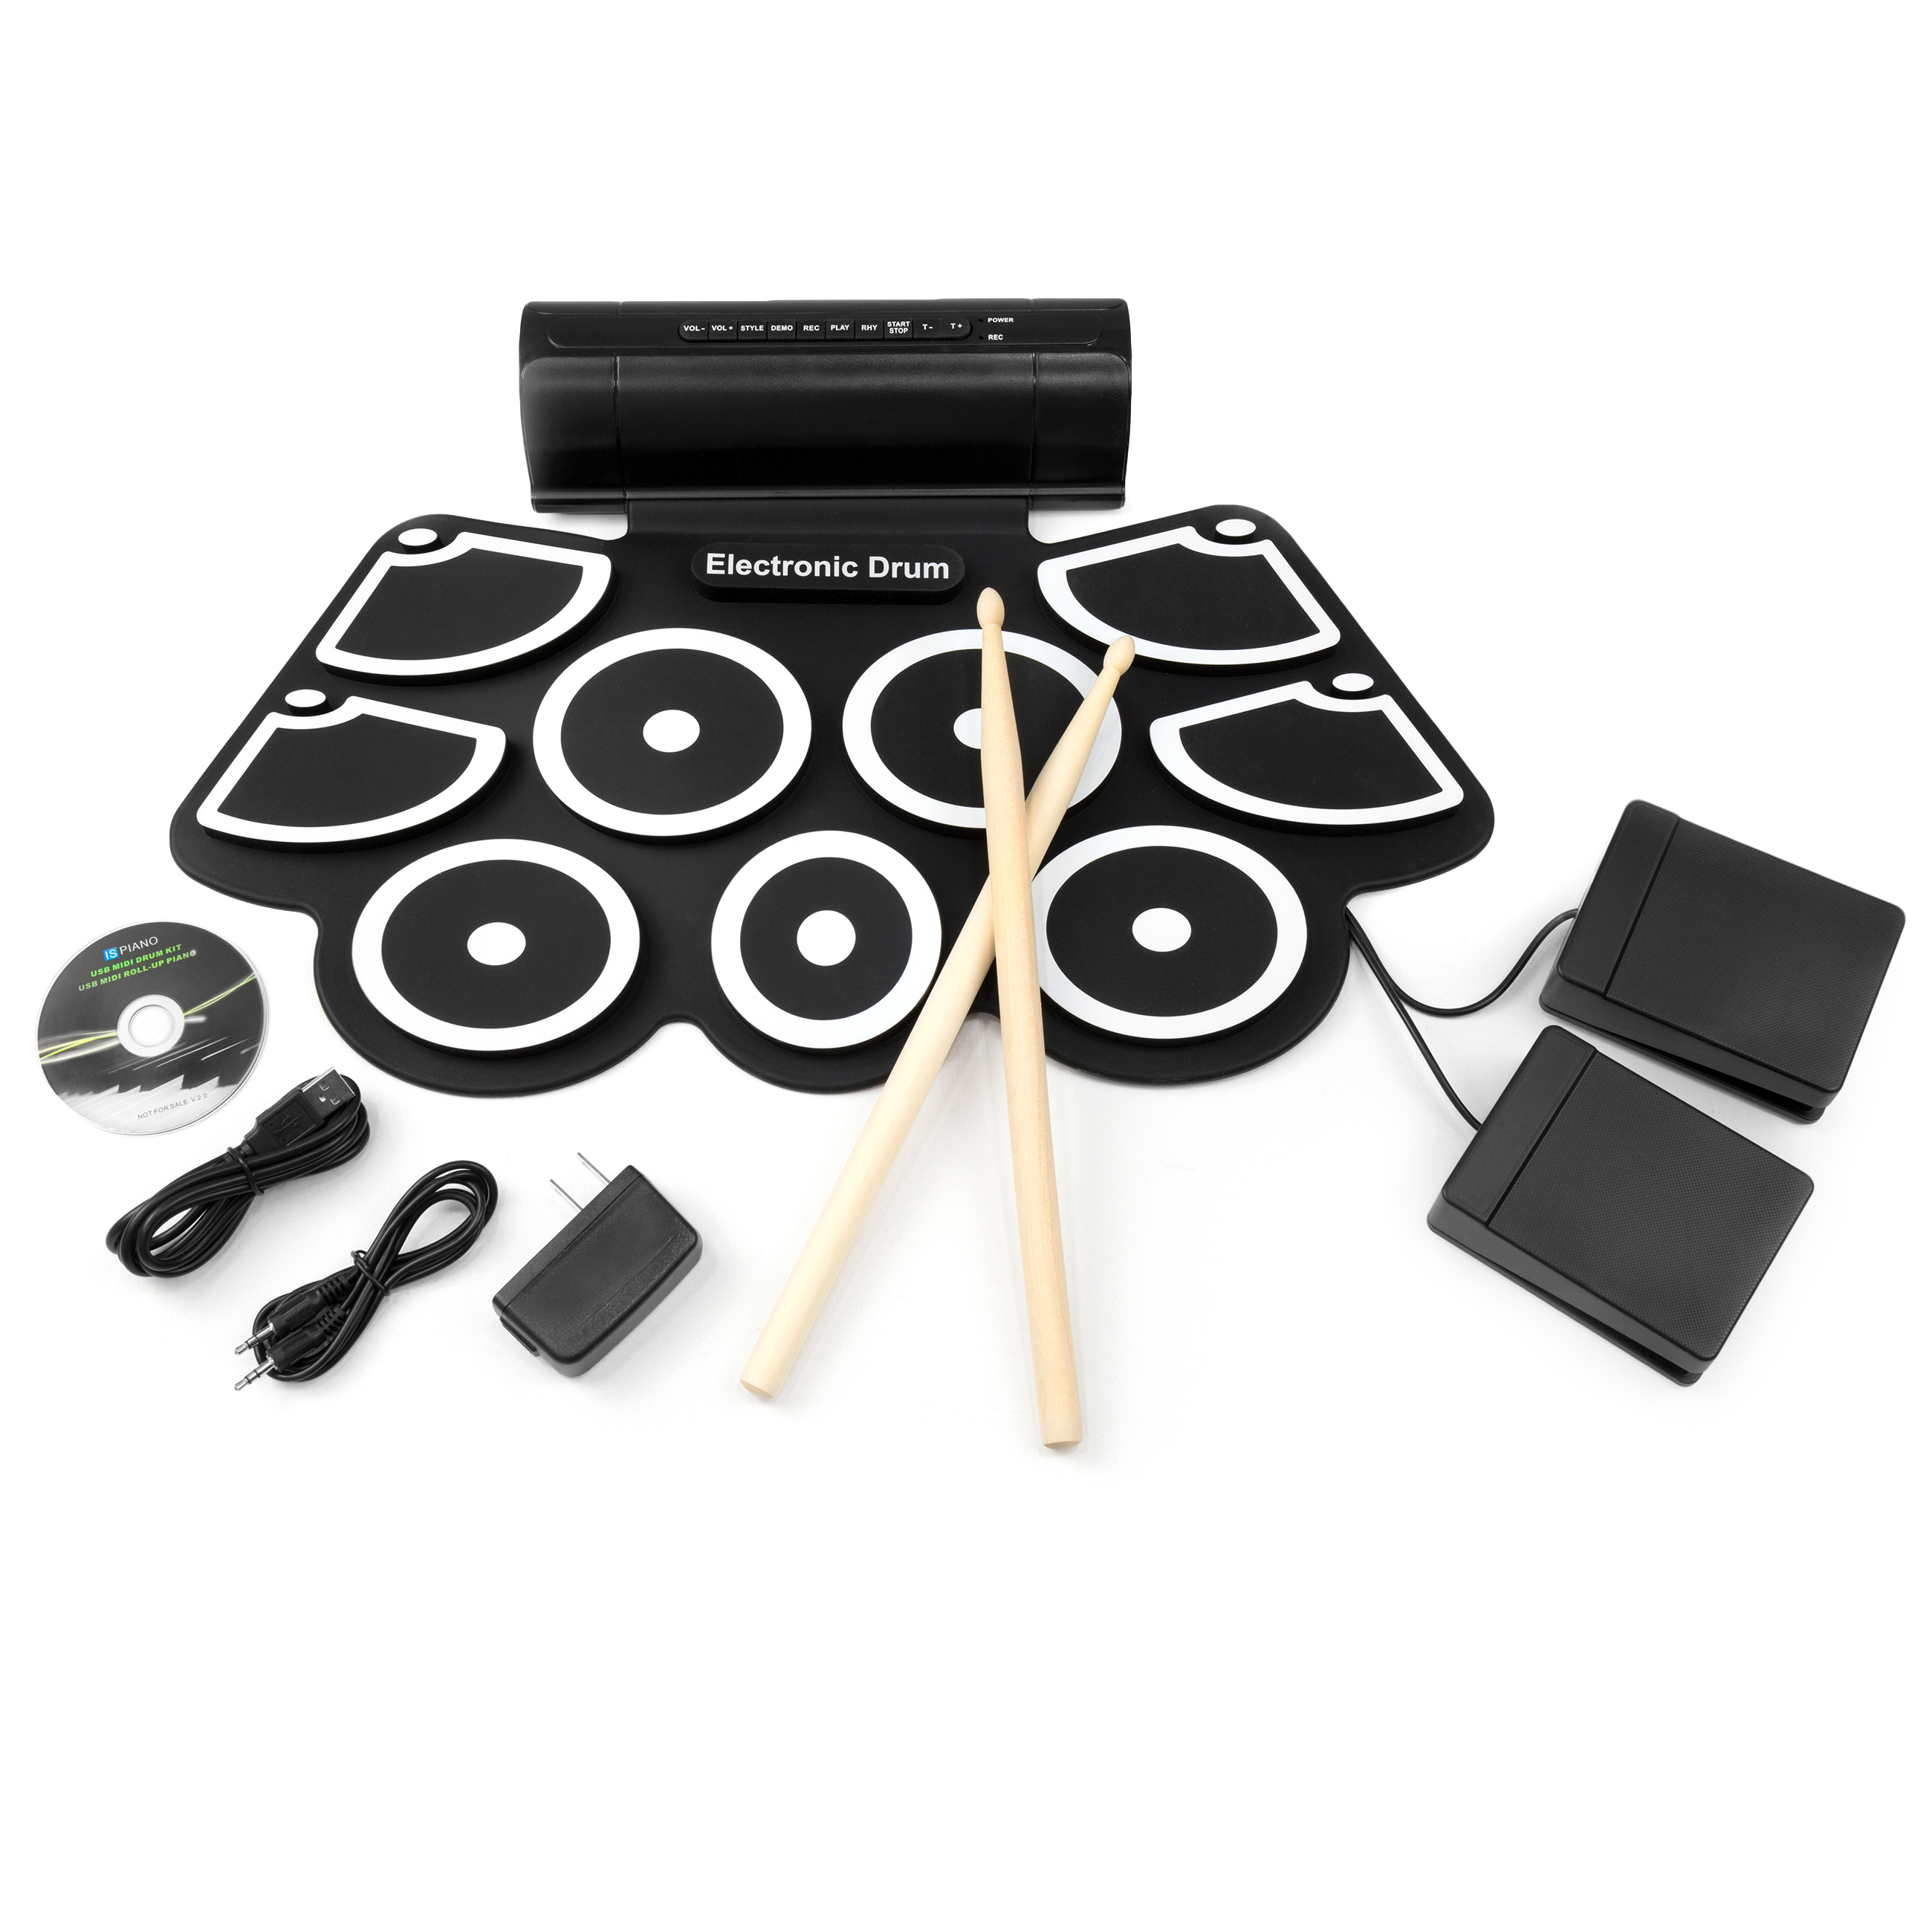 Best Choice Products Electronic Drum Kit, MIDI Roll Up Drum Pads w/ Built in Speakers, Pedals and Drumsticks Included